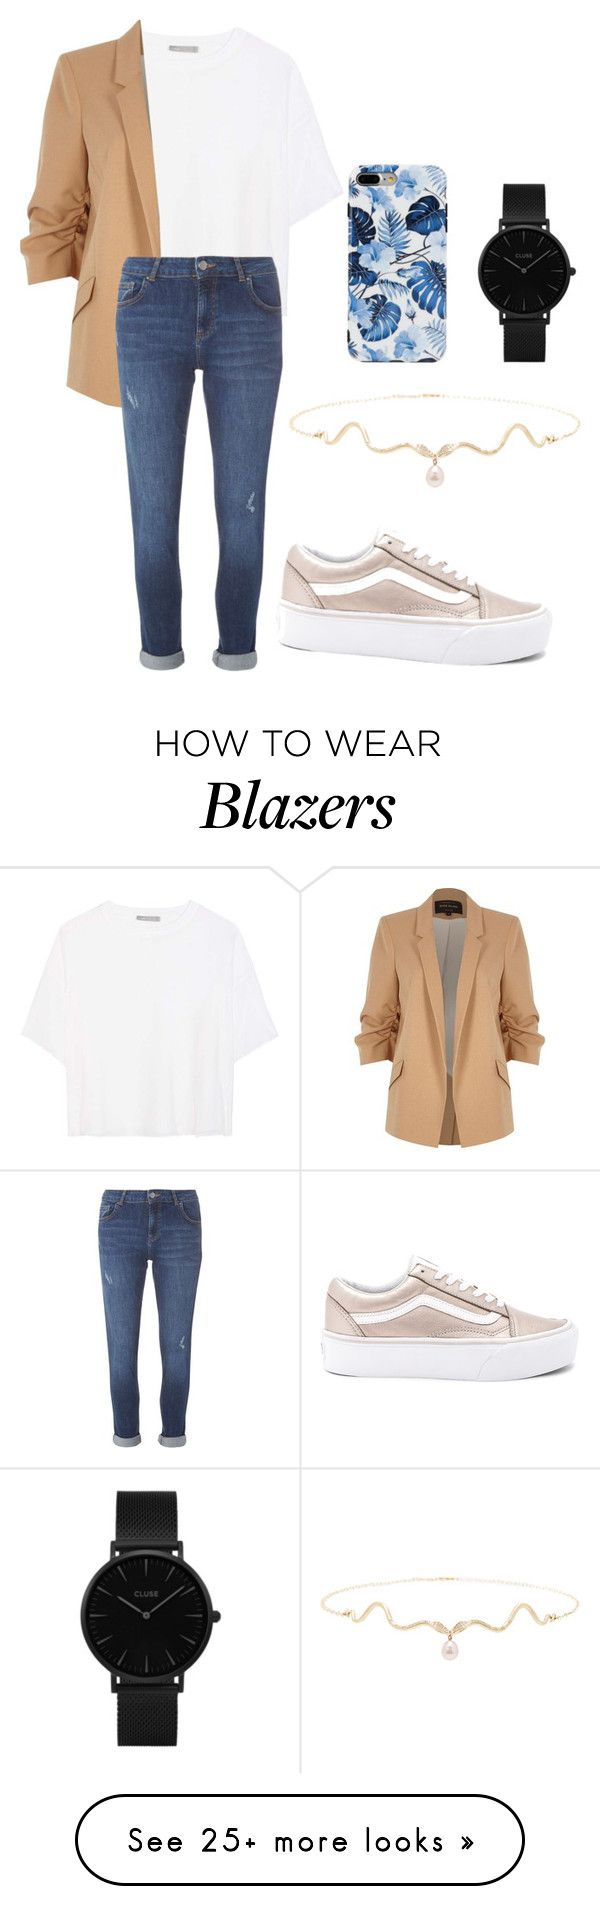 """Untitled #859"" by hodandahir on Polyvore featuring Vans, Vince, River Island, Dorothy Perkins and CLUSE"